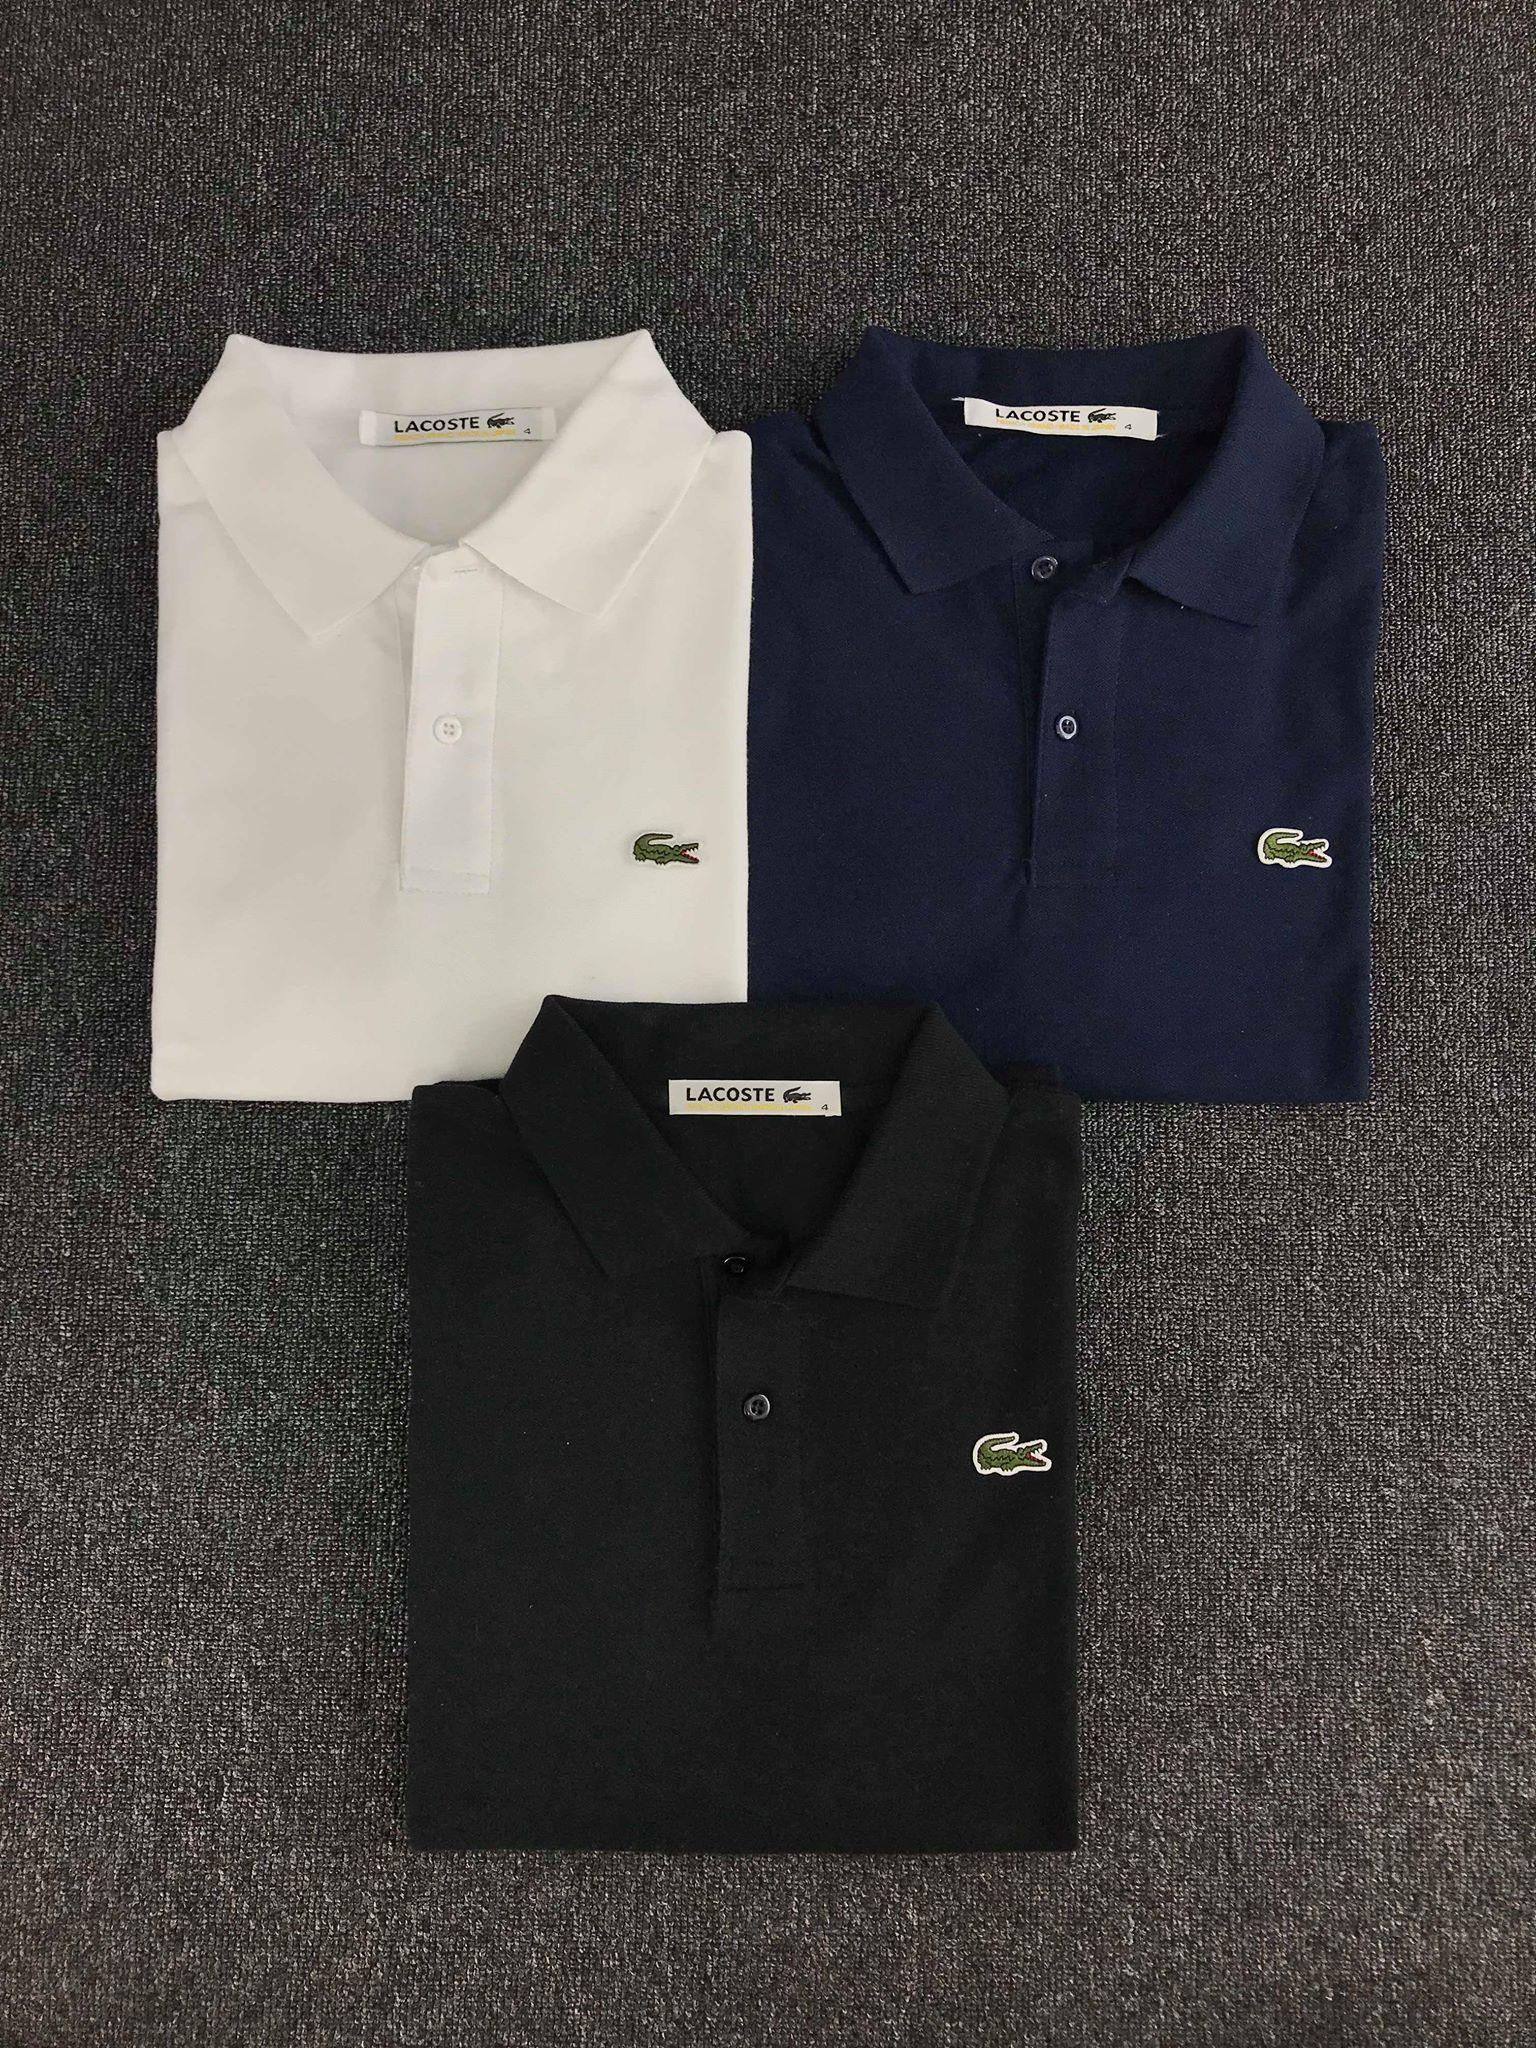 383674db42 Specifications of Lacoste Polo Shirt Trio (Classic Logo)